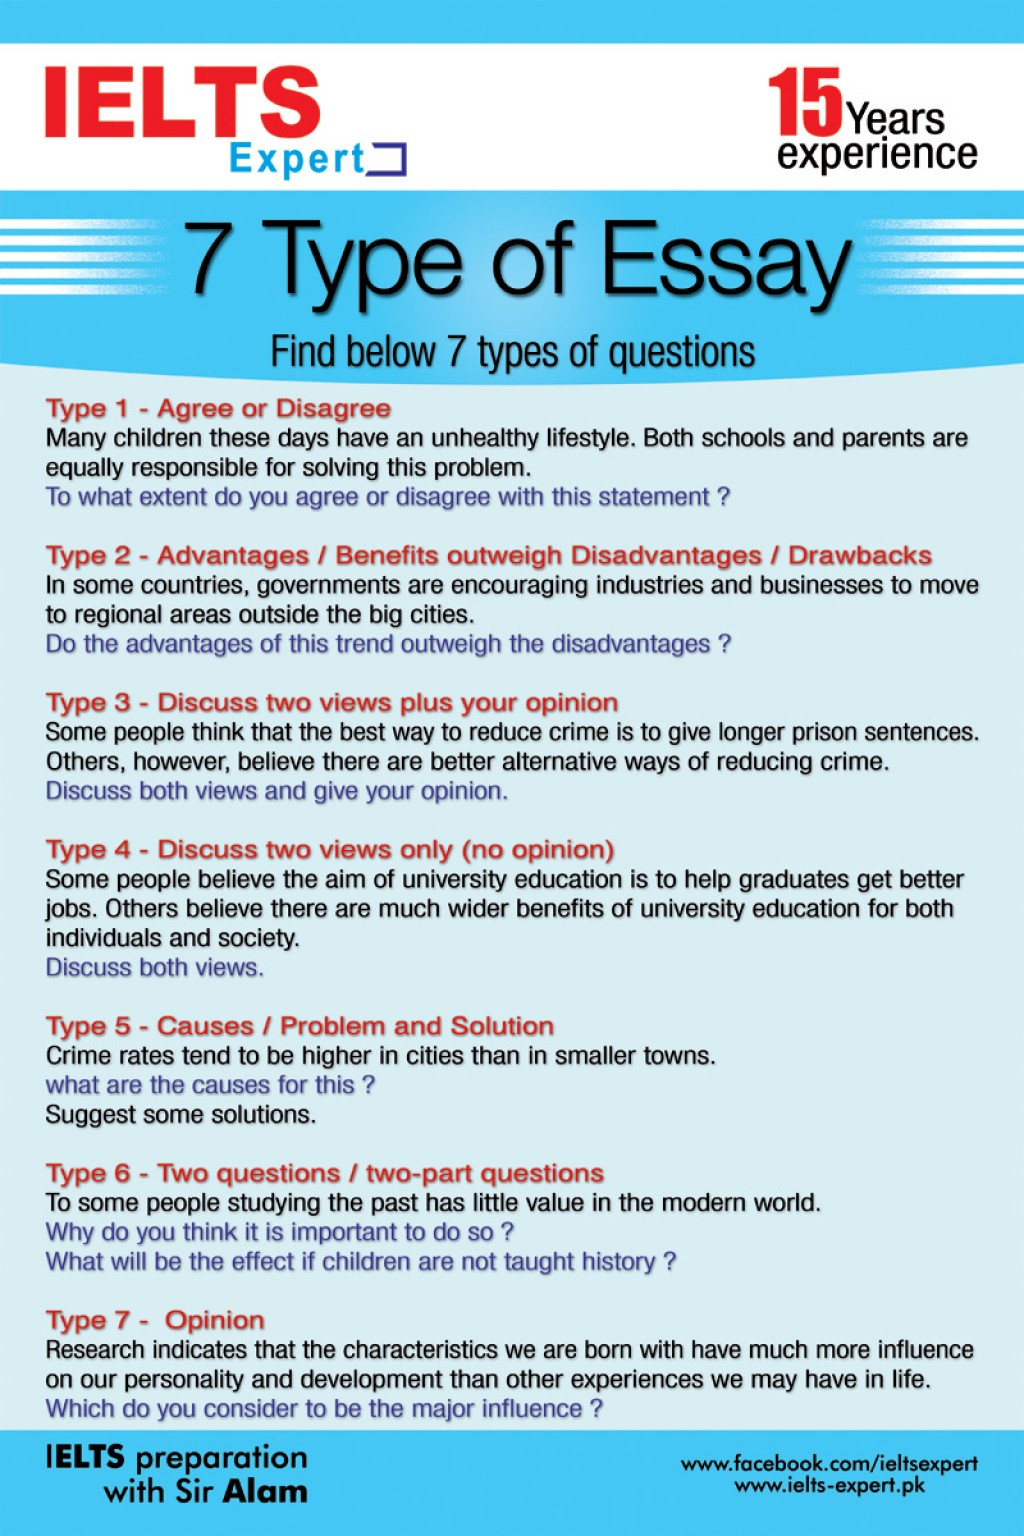 001 Type An Essay Example Of Fantastic Writing Write Question How To On Your Iphone Large